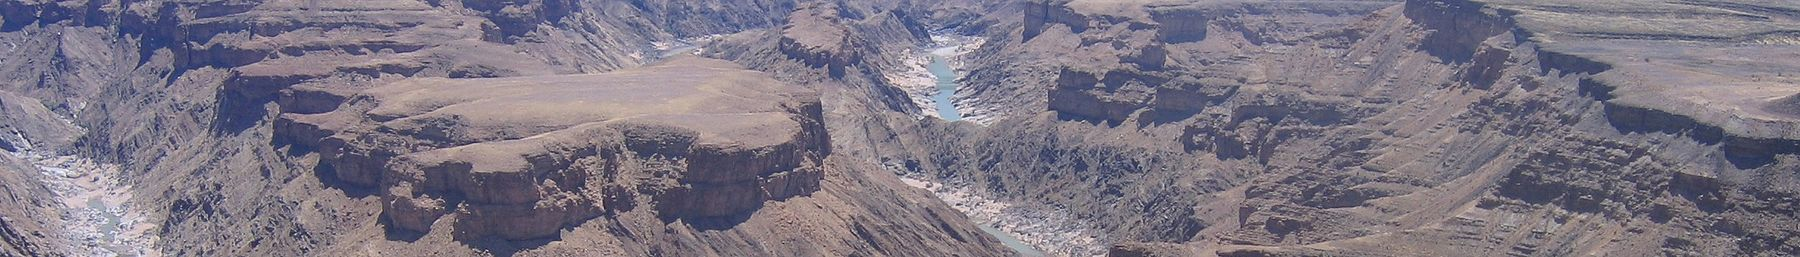 WV banner Fish river canyon.jpg